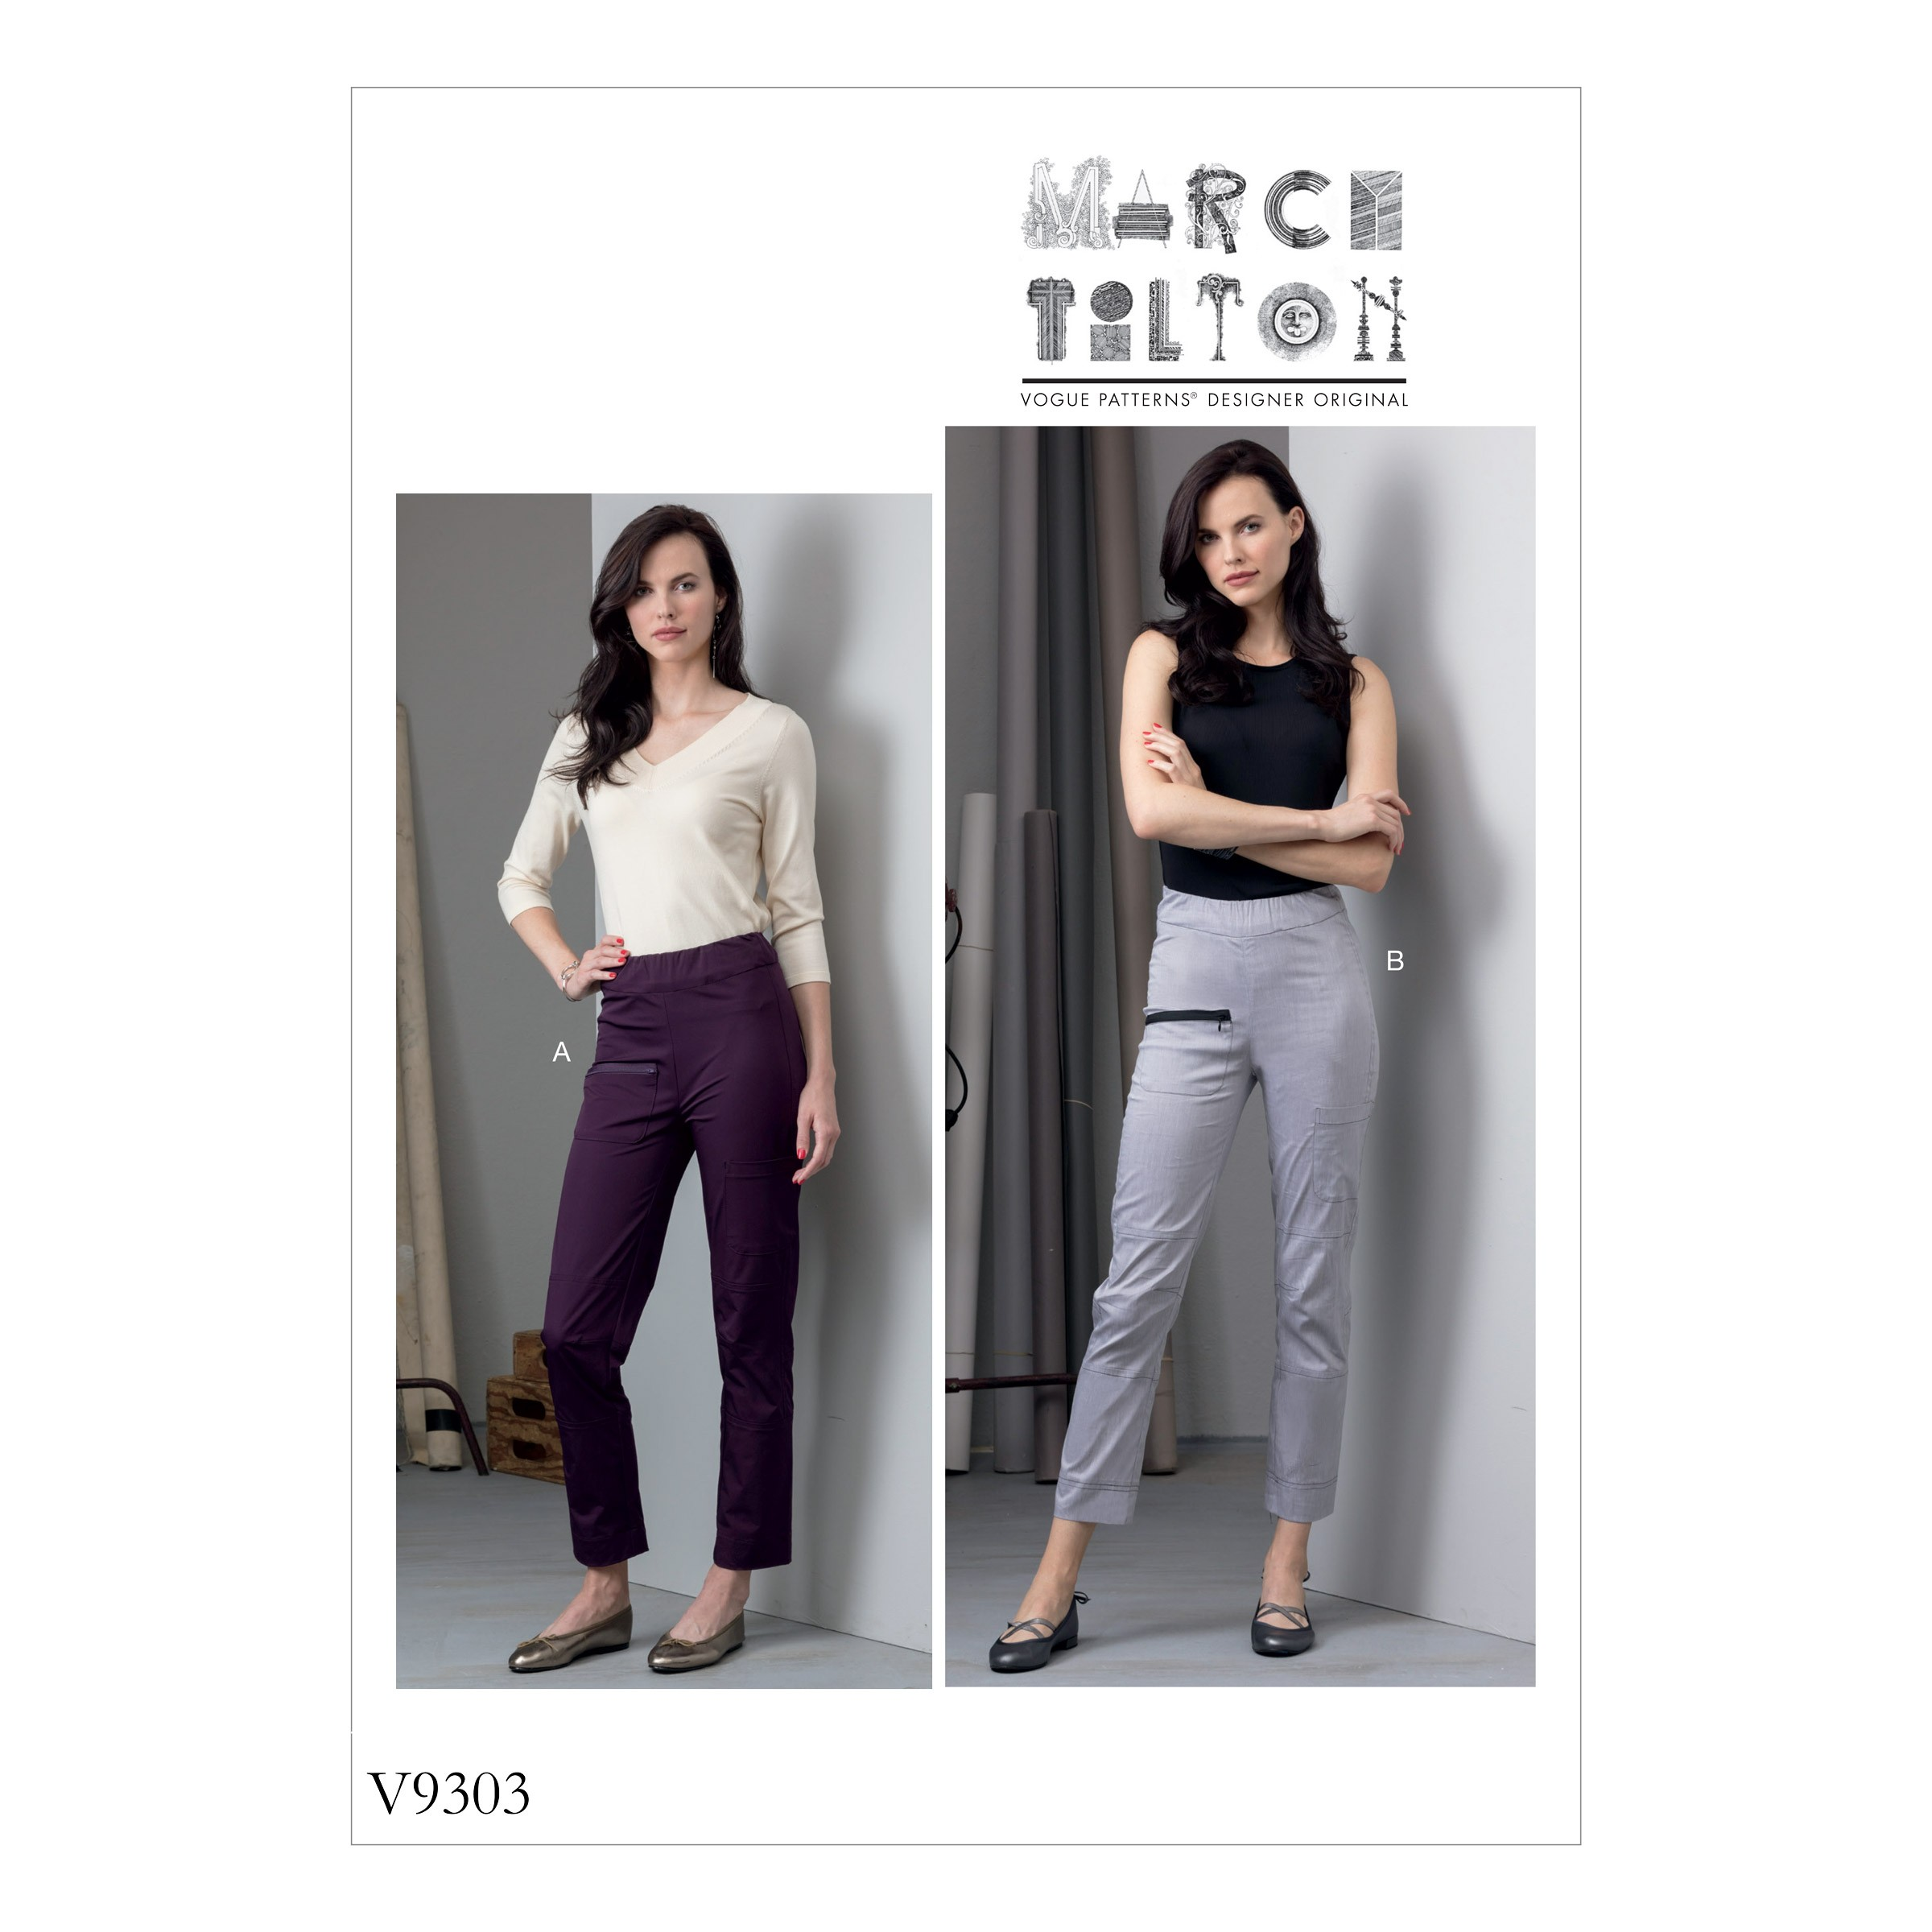 Vogue Sewing Pattern V9303 Women's Close Fitting Trousers With Pockets